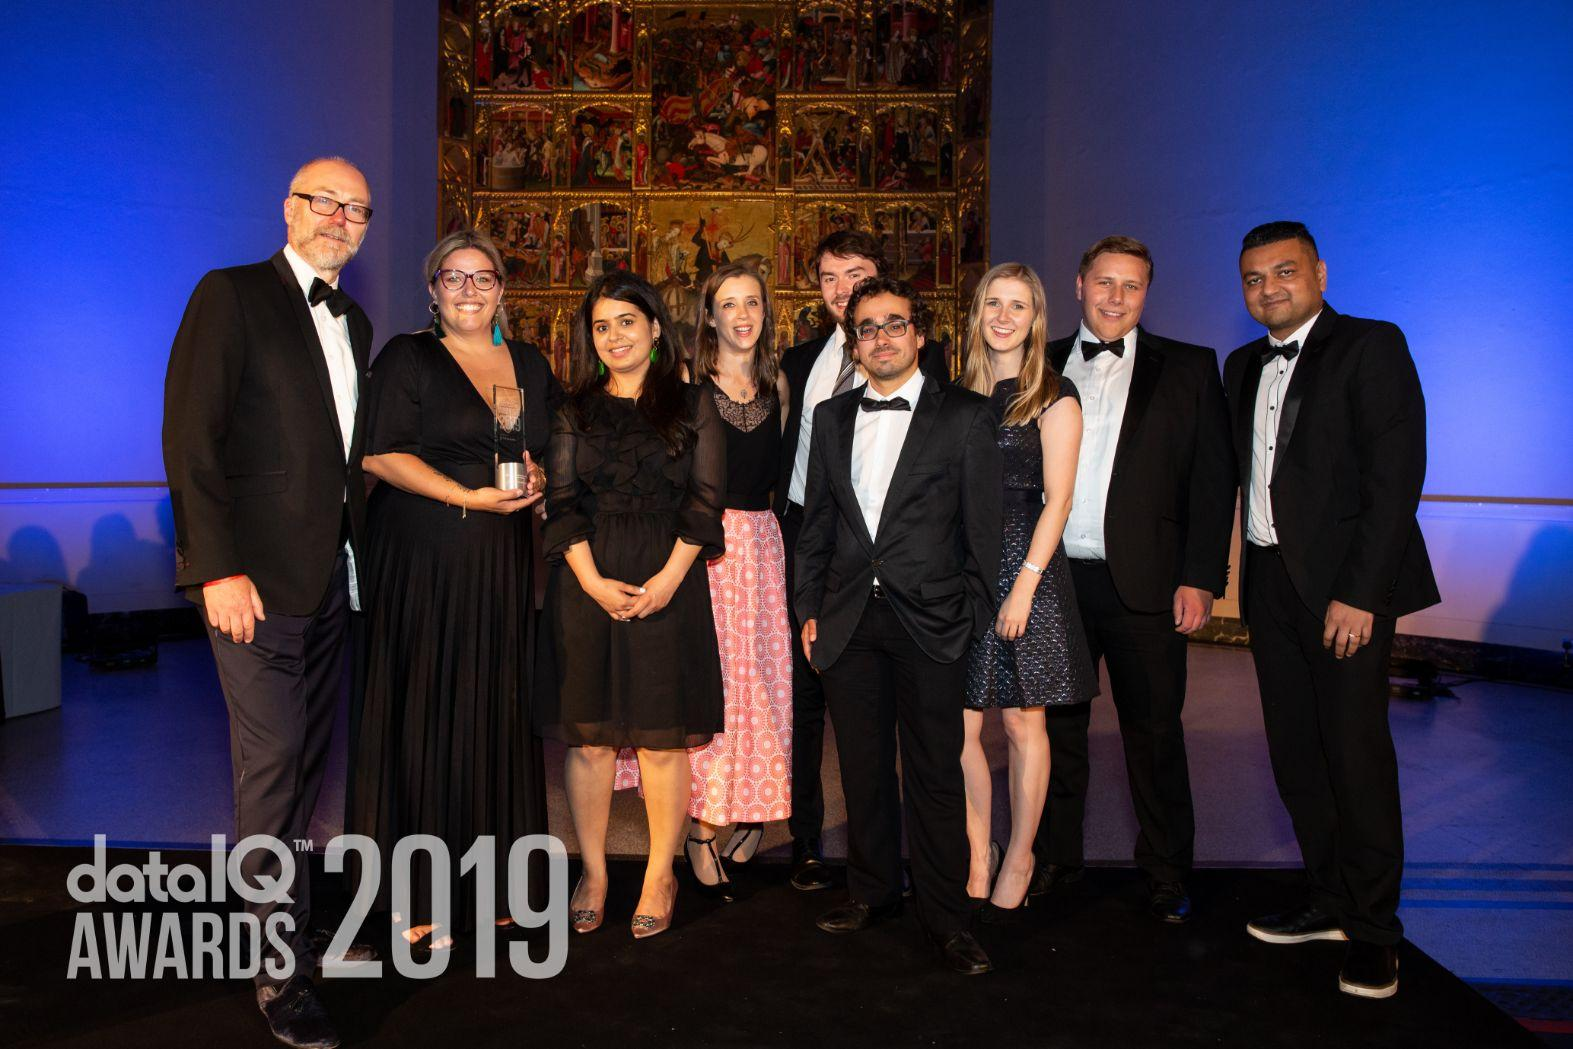 Awards 2019 Image 54